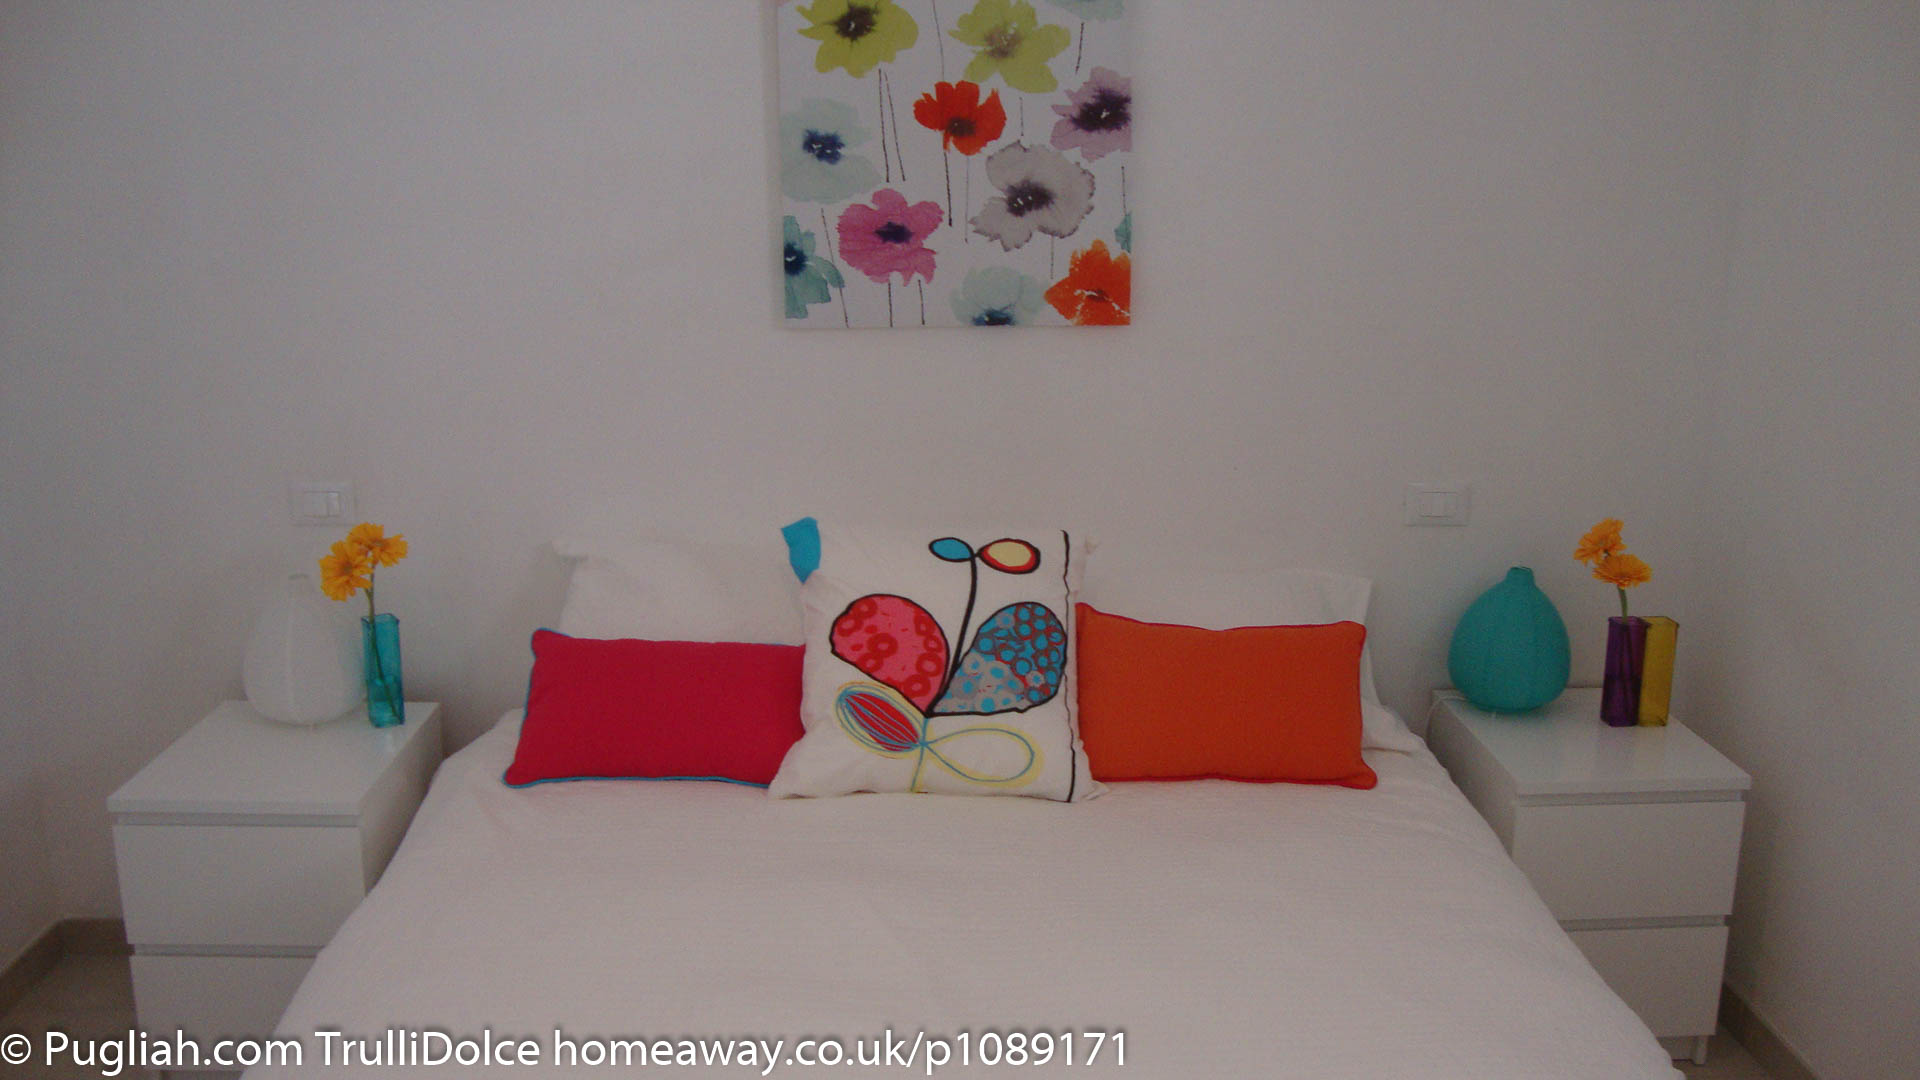 TrulliDolce Pugliah.com bedroom 2, TrulliDolce, Trullo holiday, trulli holidays, Puglia holiday in a